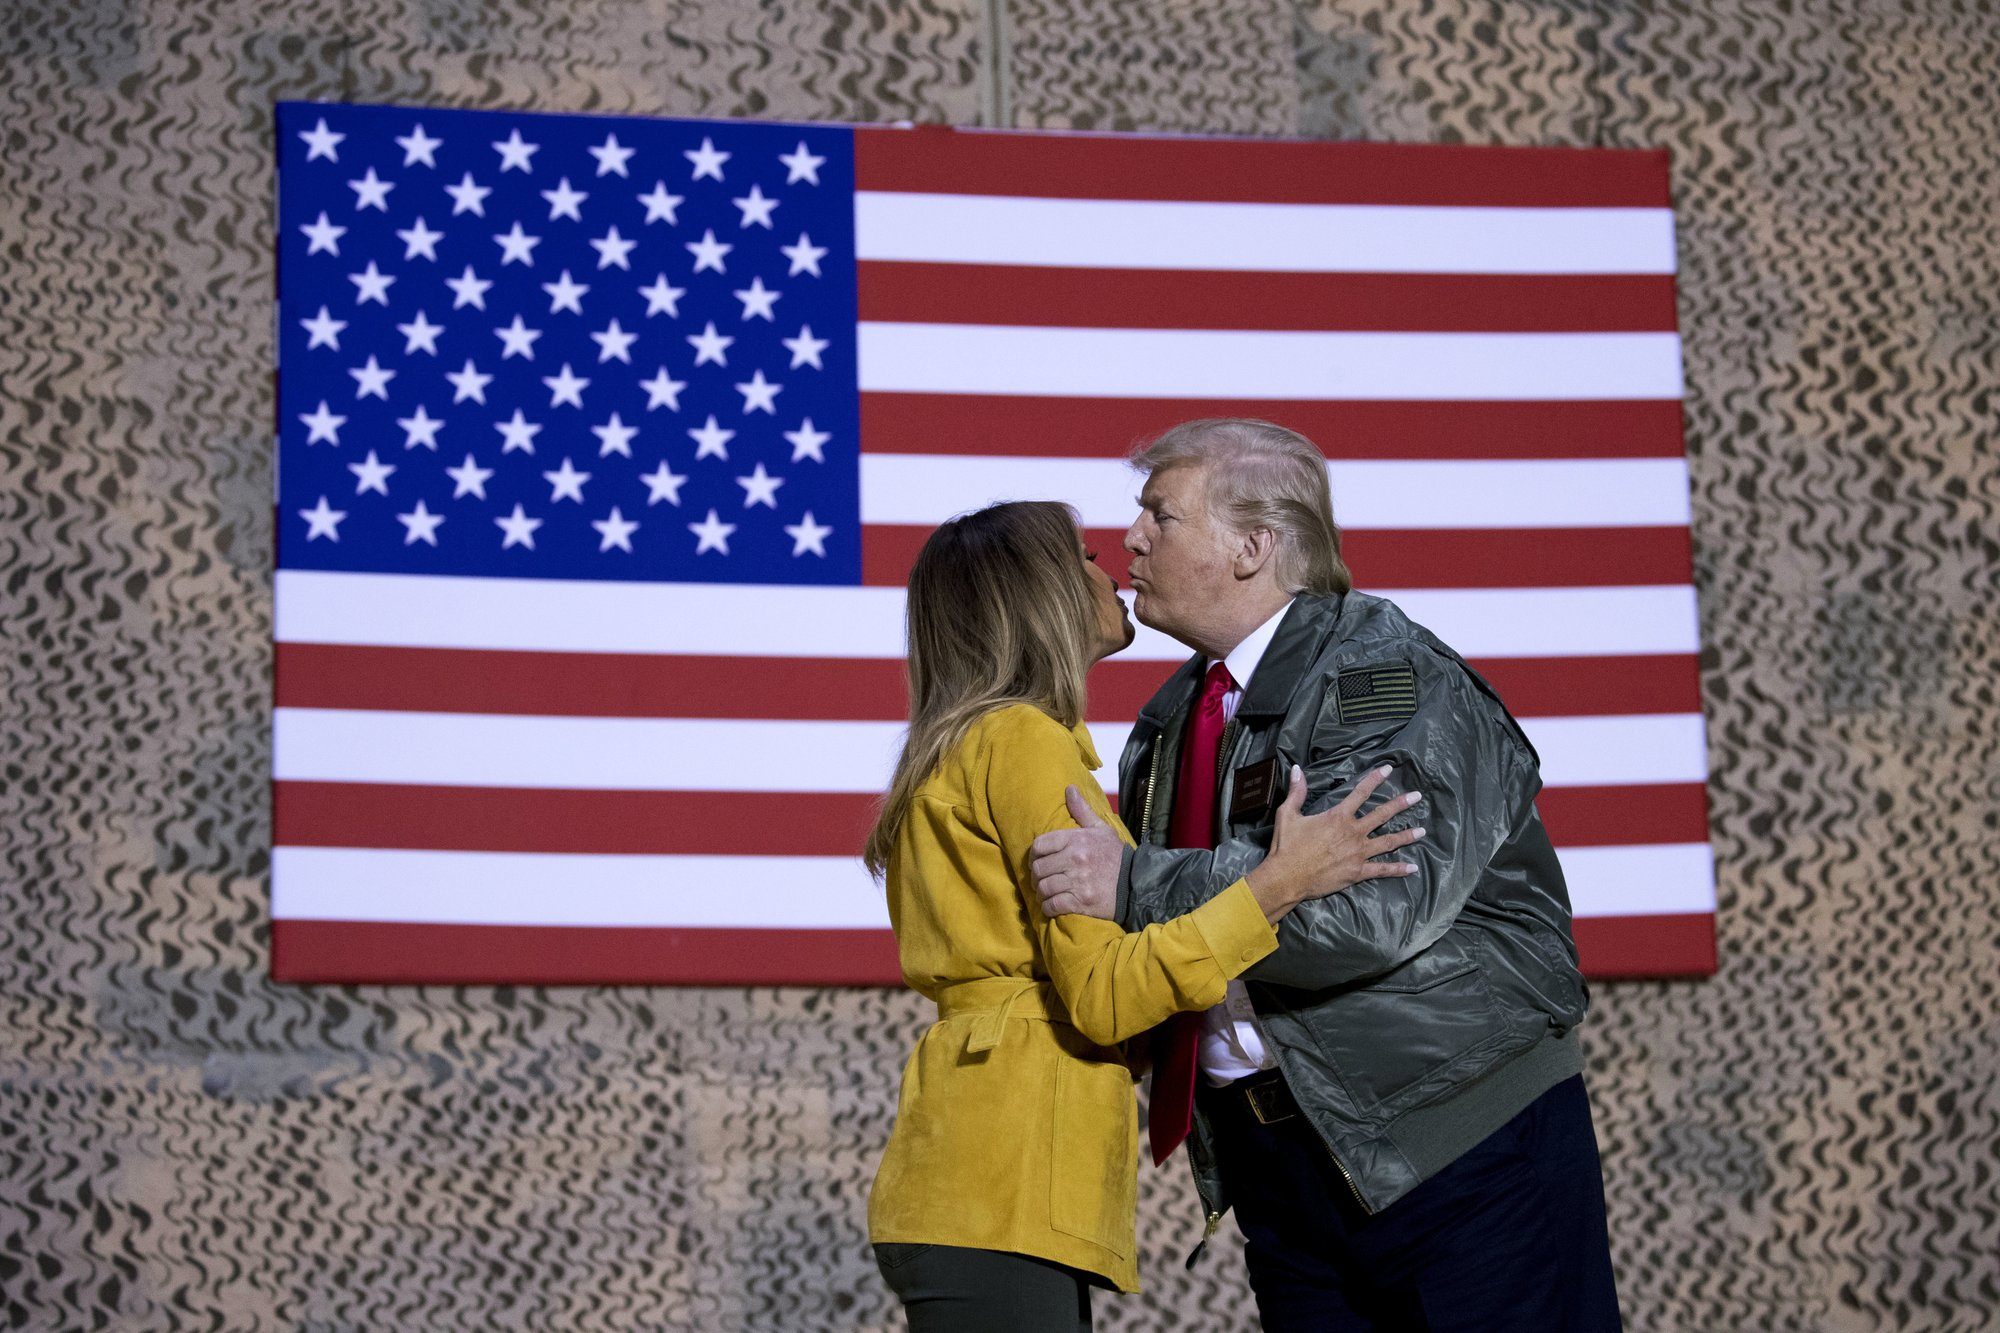 President Donald Trump kisses first lady Melania Trump during a hanger rally at Al Asad Air Base, Iraq, Wednesday, Dec. 26, 2018. President Donald Trump, who is visiting Iraq, says he has 'no plans at all' to remove U.S. troops from the country. (AP Photo/Andrew Harnik)